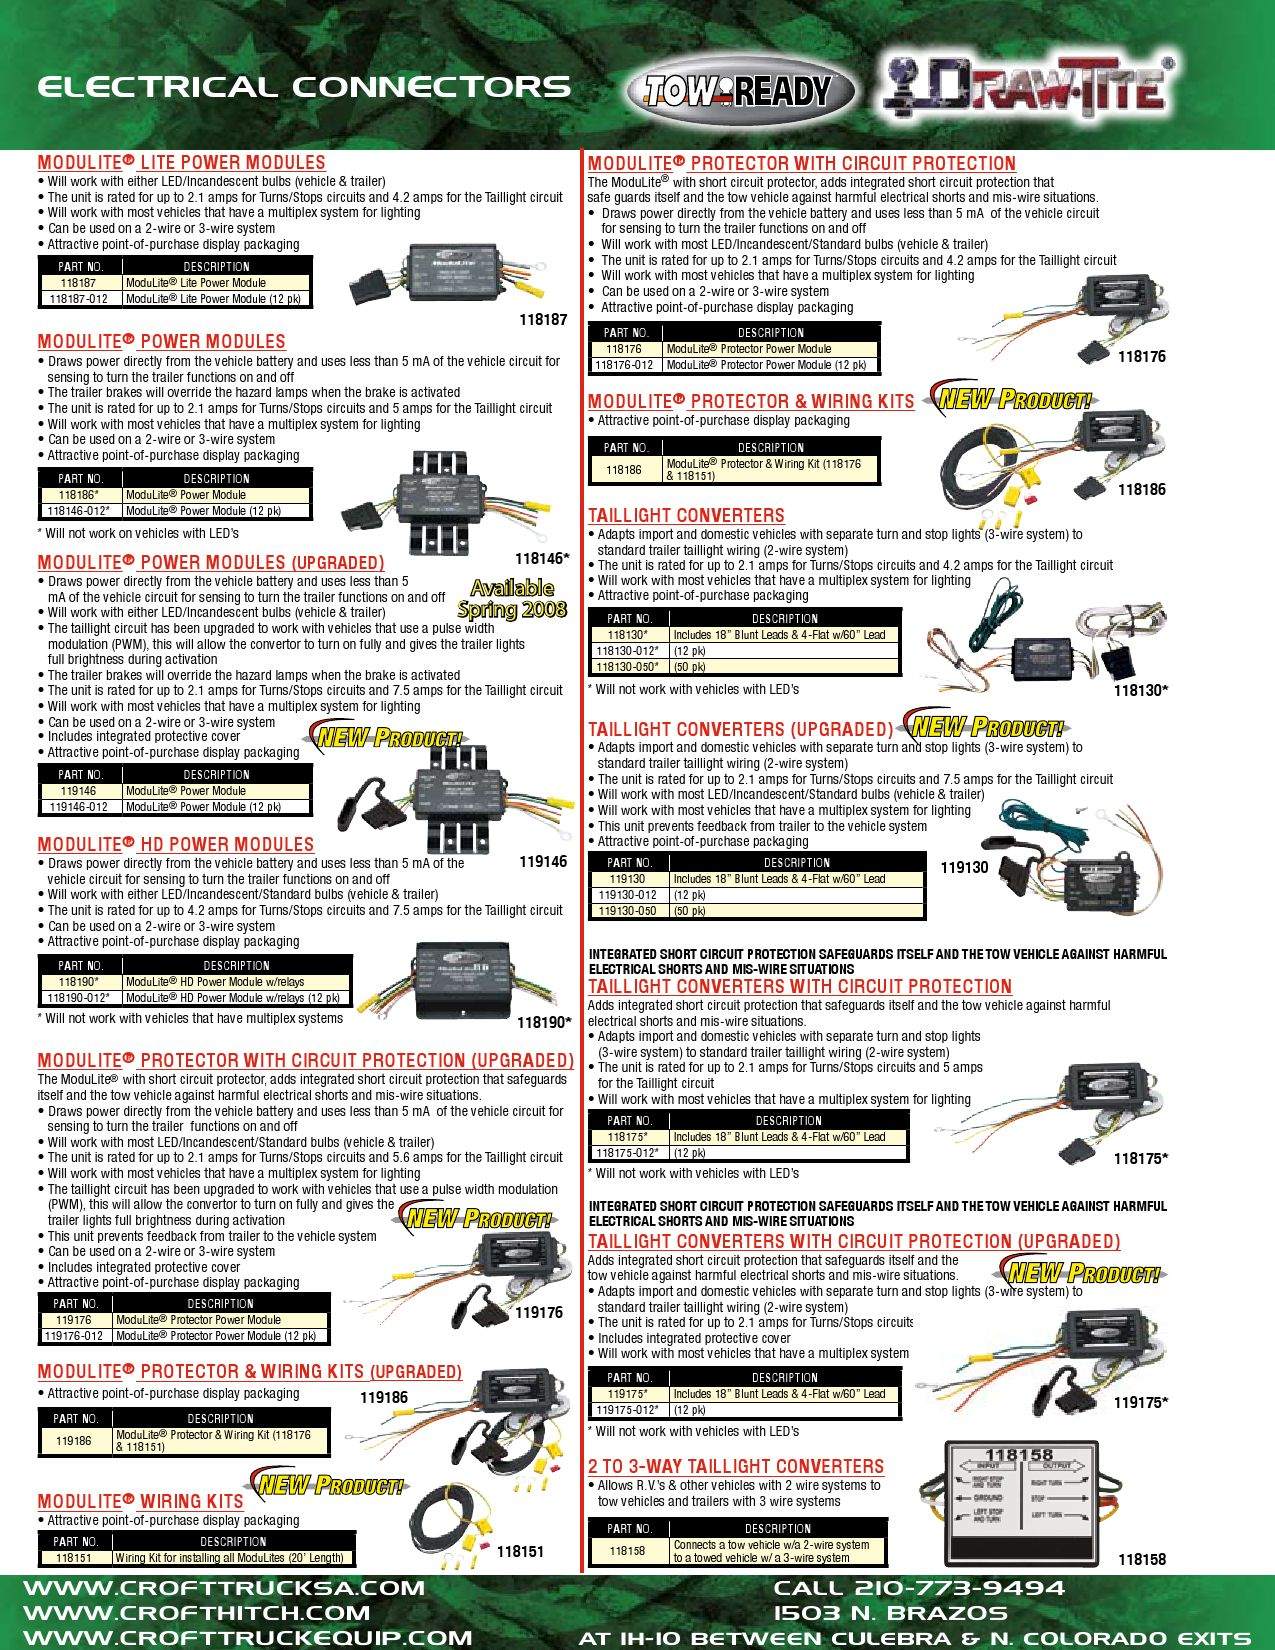 Electrical Connectors Modulite Lite Power Modules By Croft Supply Towed Vehicle Wiring Kit And Distribution Issuu